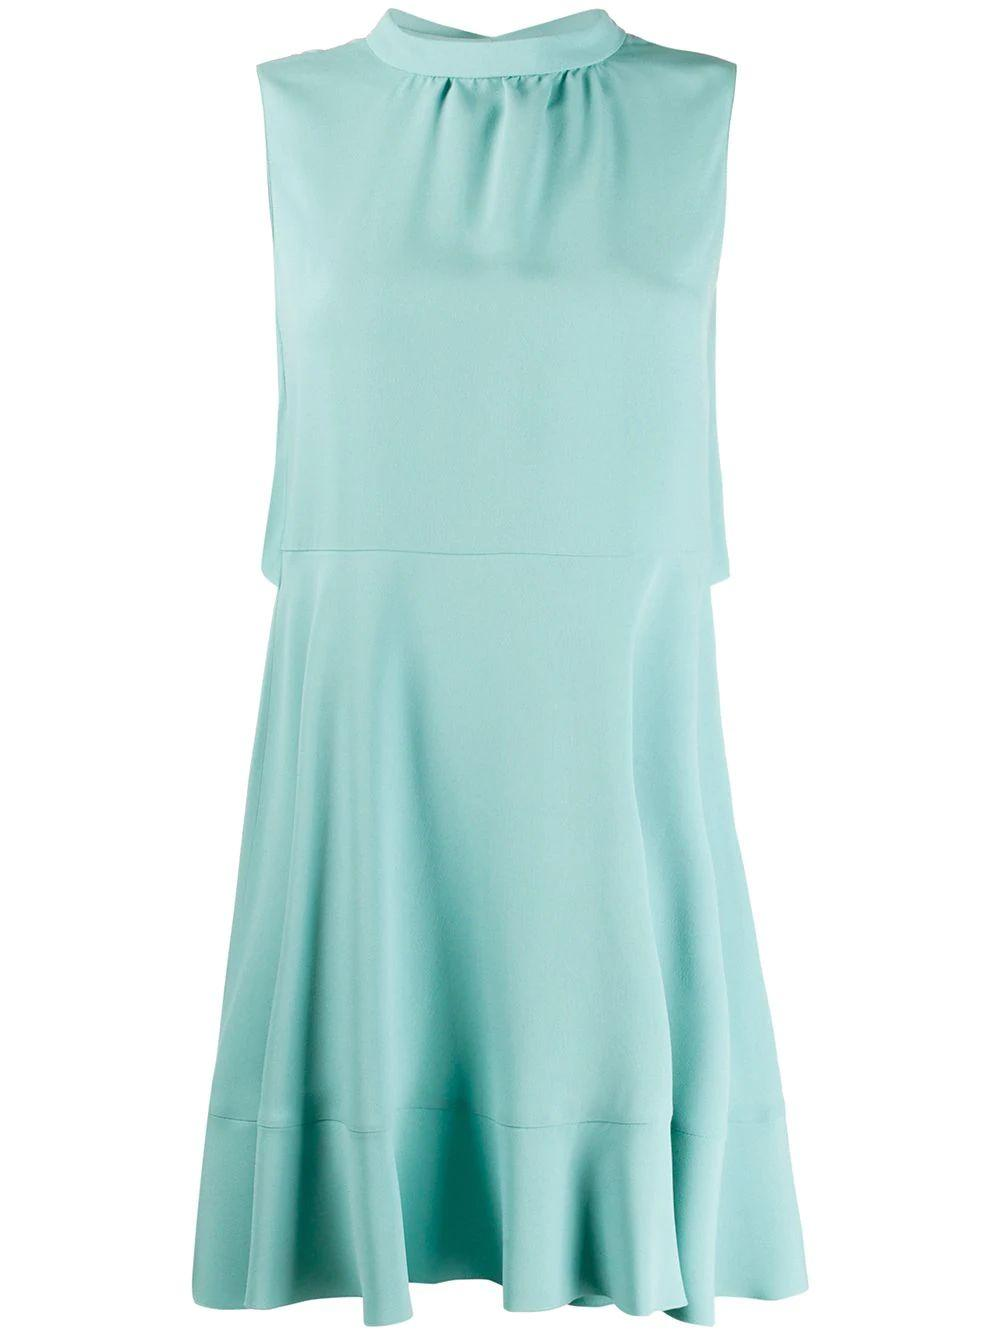 Sleeve Less Crepe Satin Dress With Ruffle Back